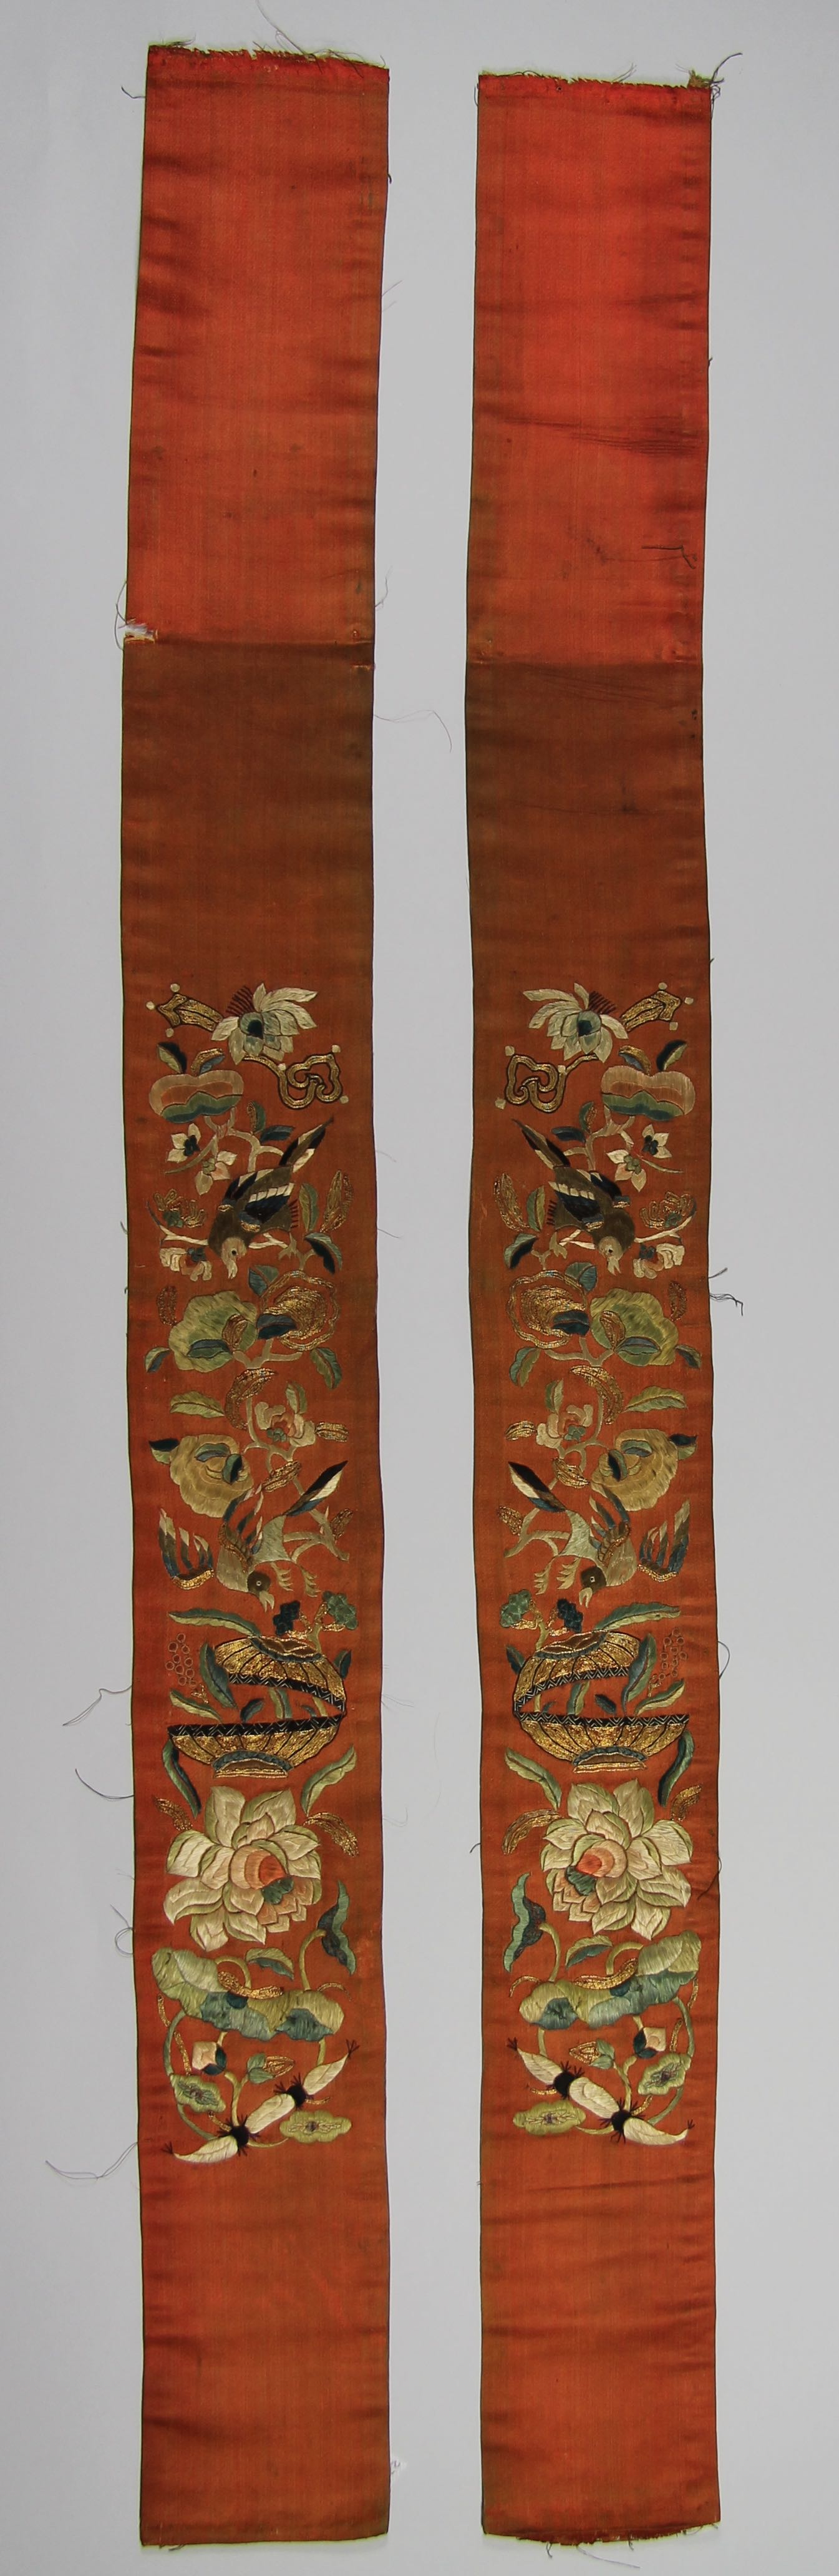 Pair of silk sleeve bands